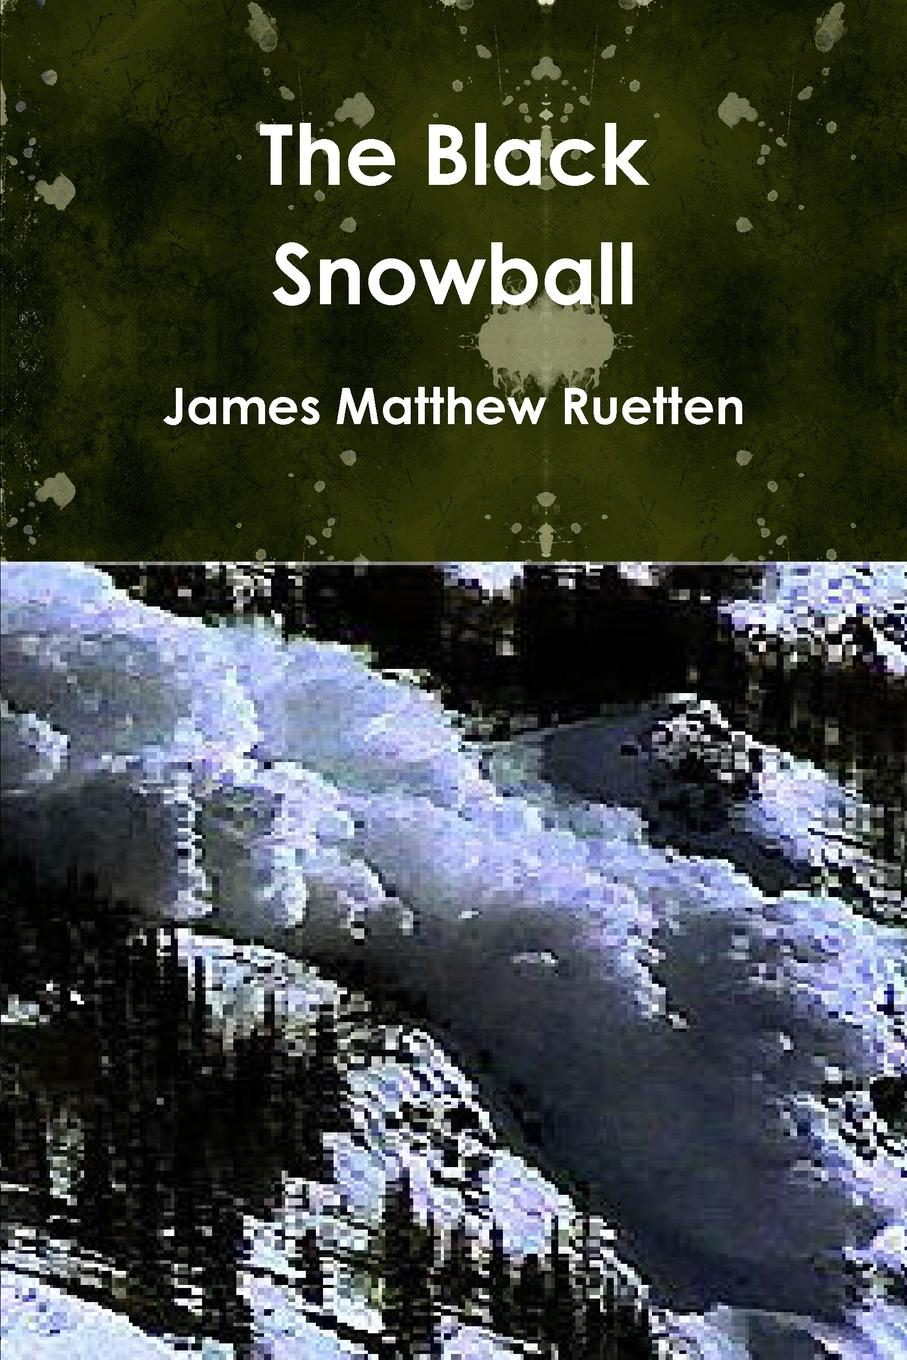 The Black Snowball This book was started in 2005, the first of which published in 2007...